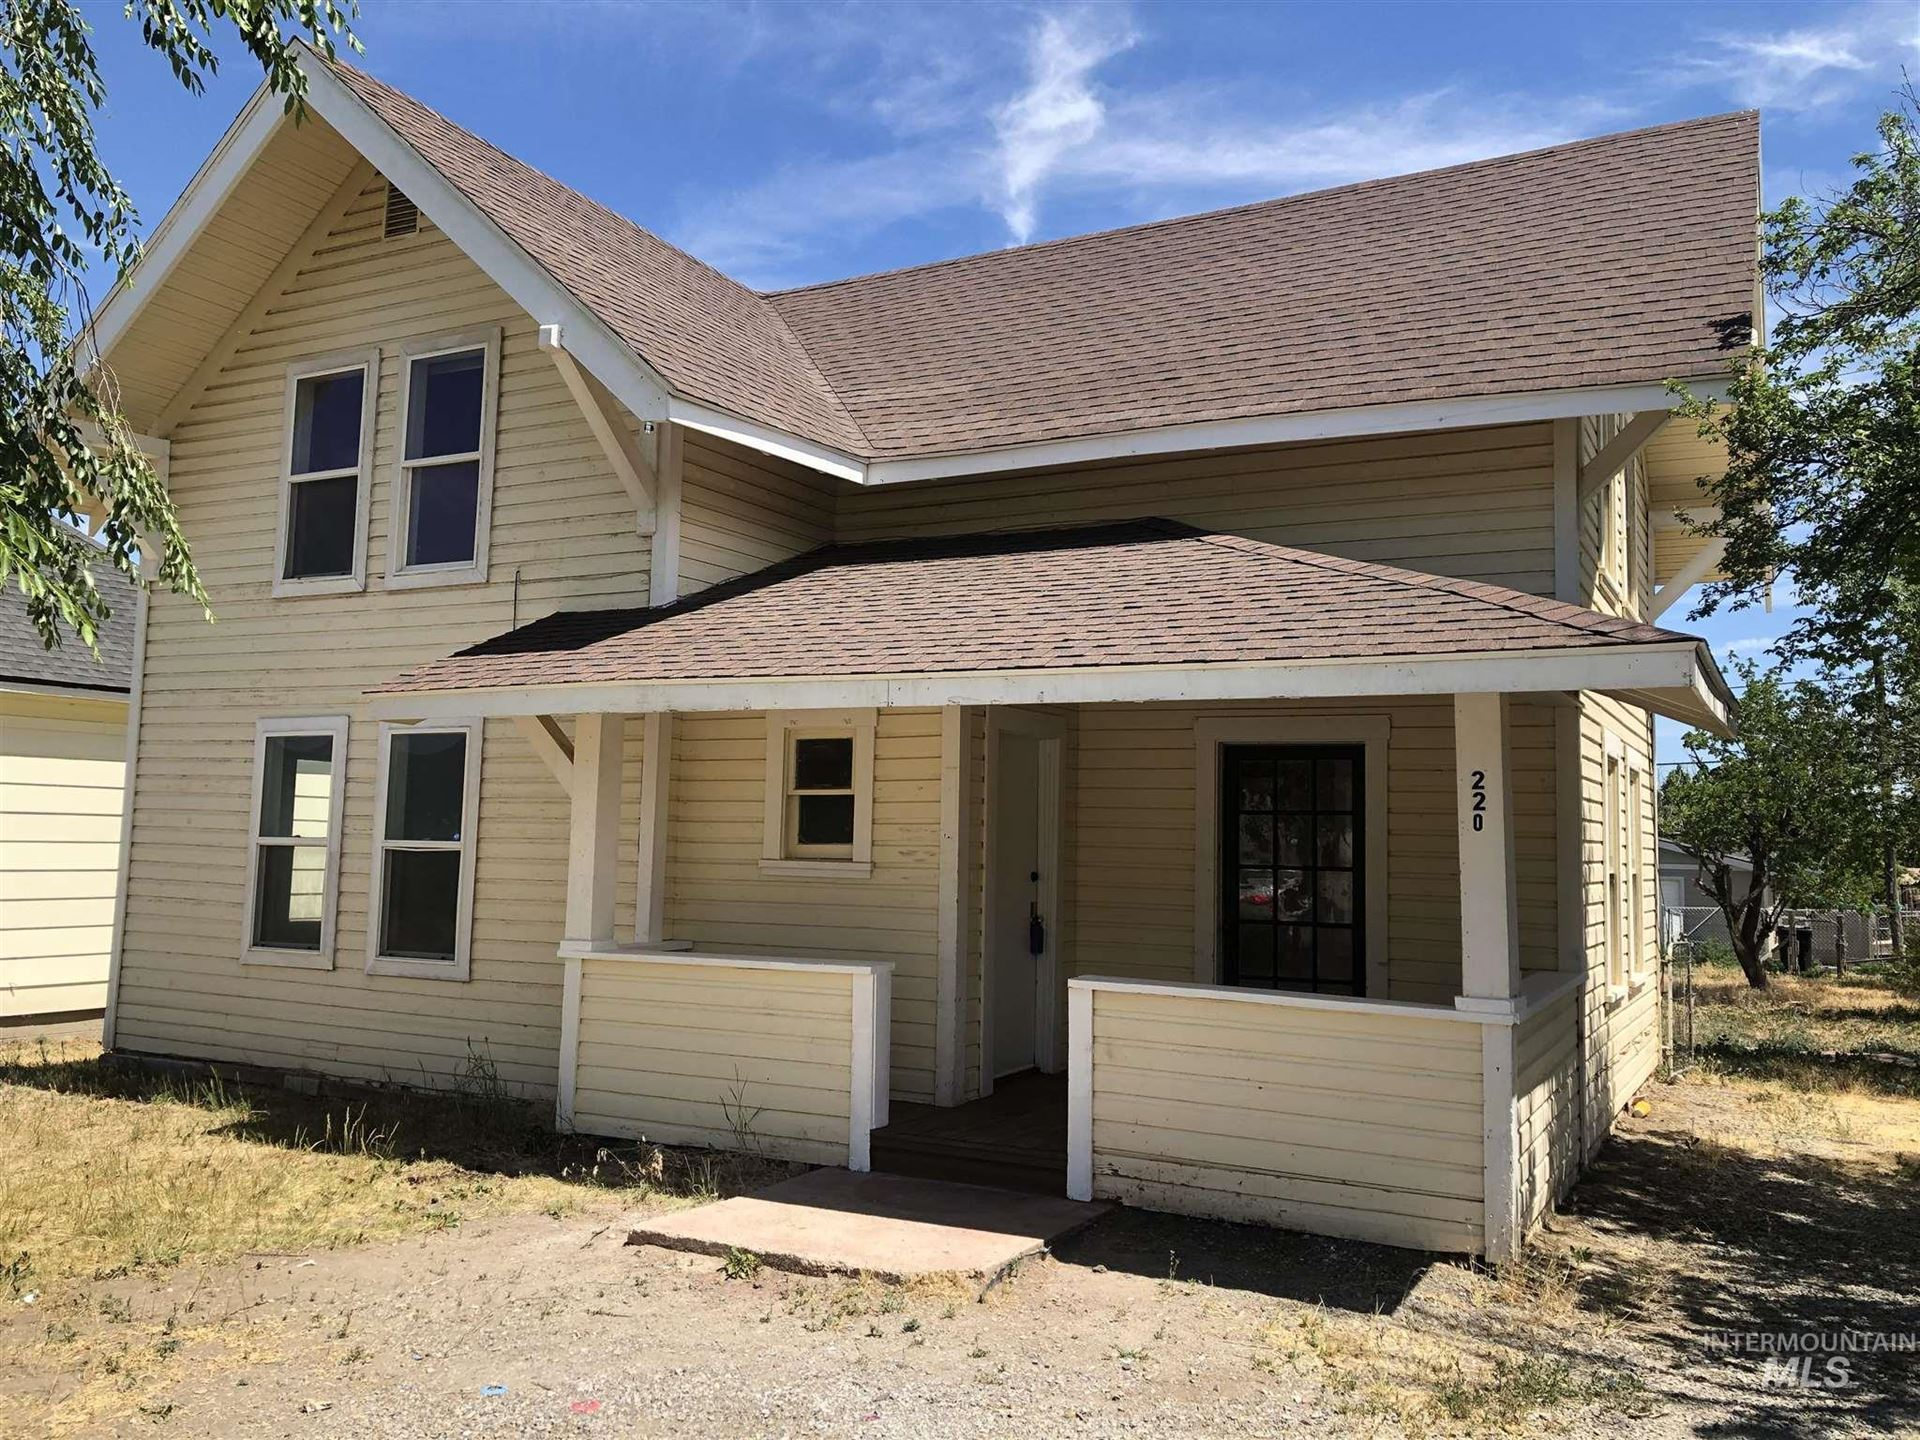 Photo of 220 8th Ave. S., Buhl, ID 83316 (MLS # 98796560)